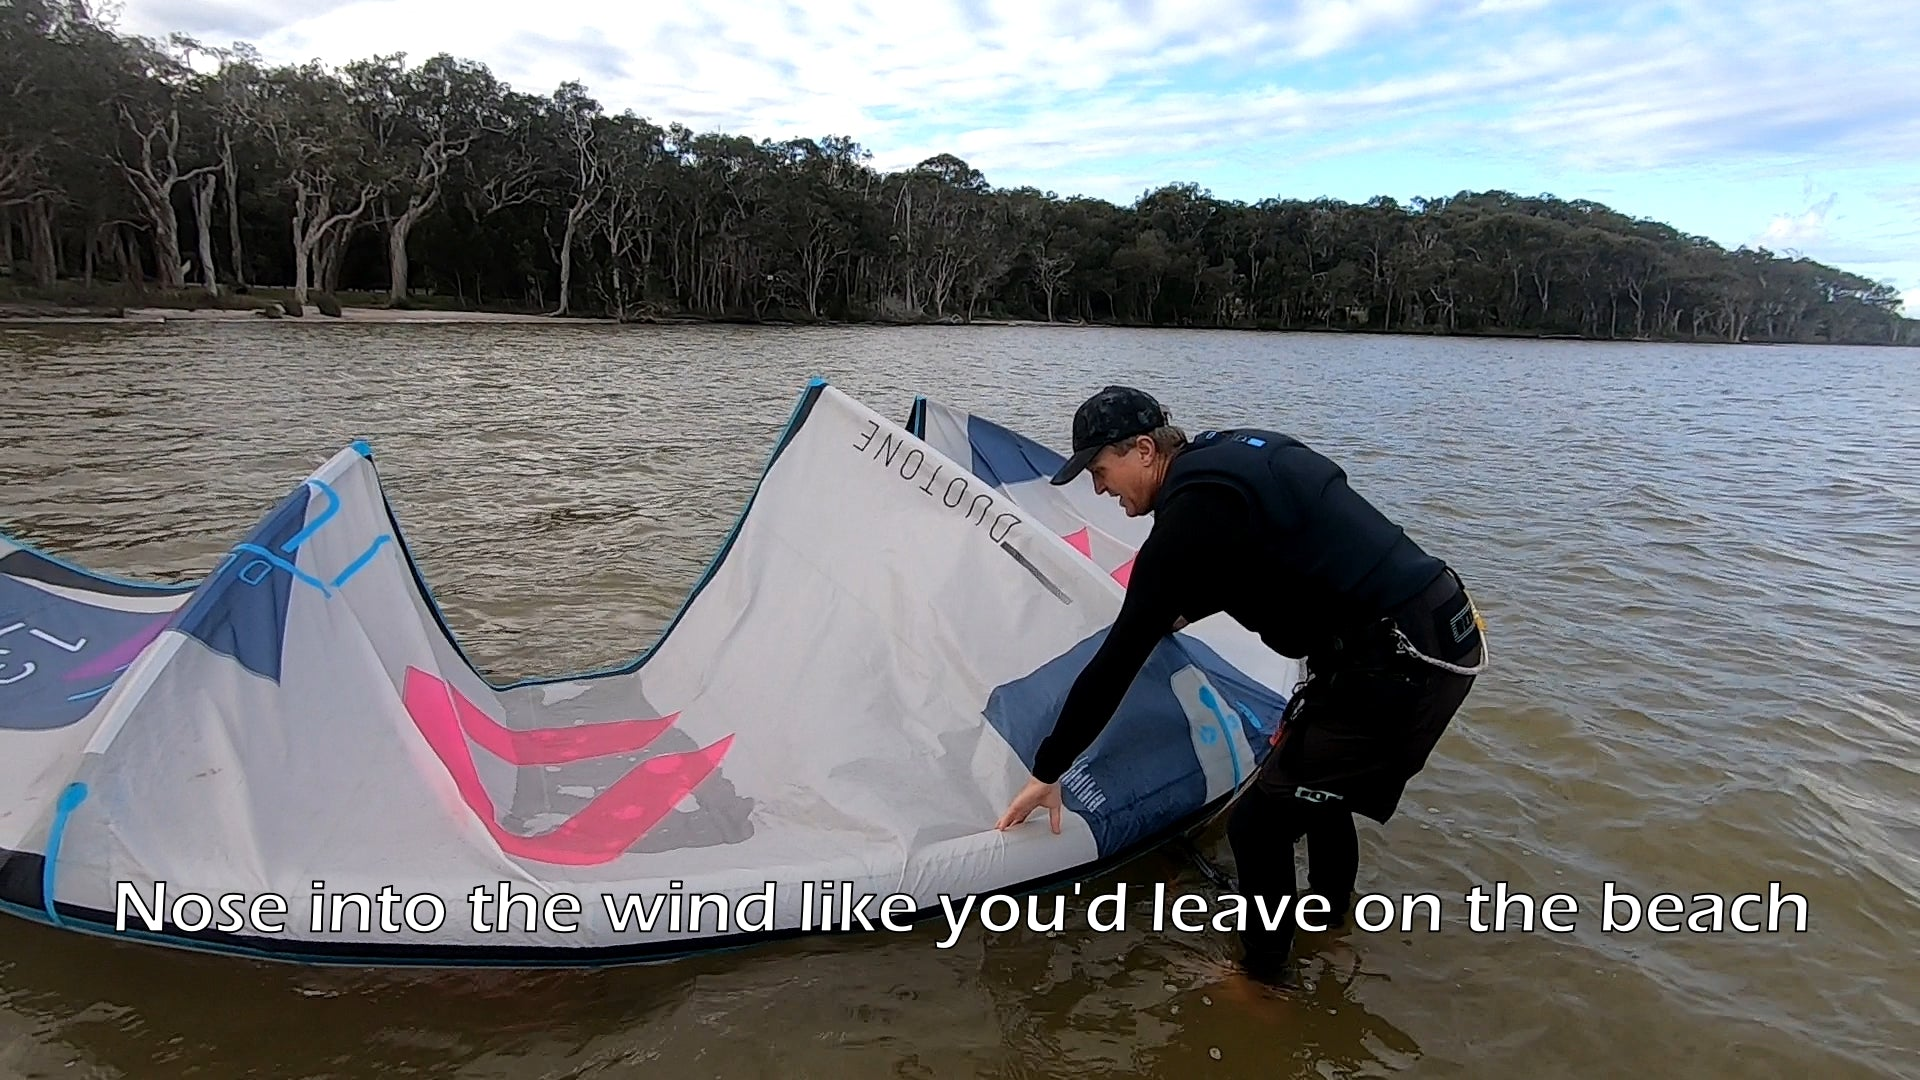 Performing a Kitesurfing Drift Launch Safely